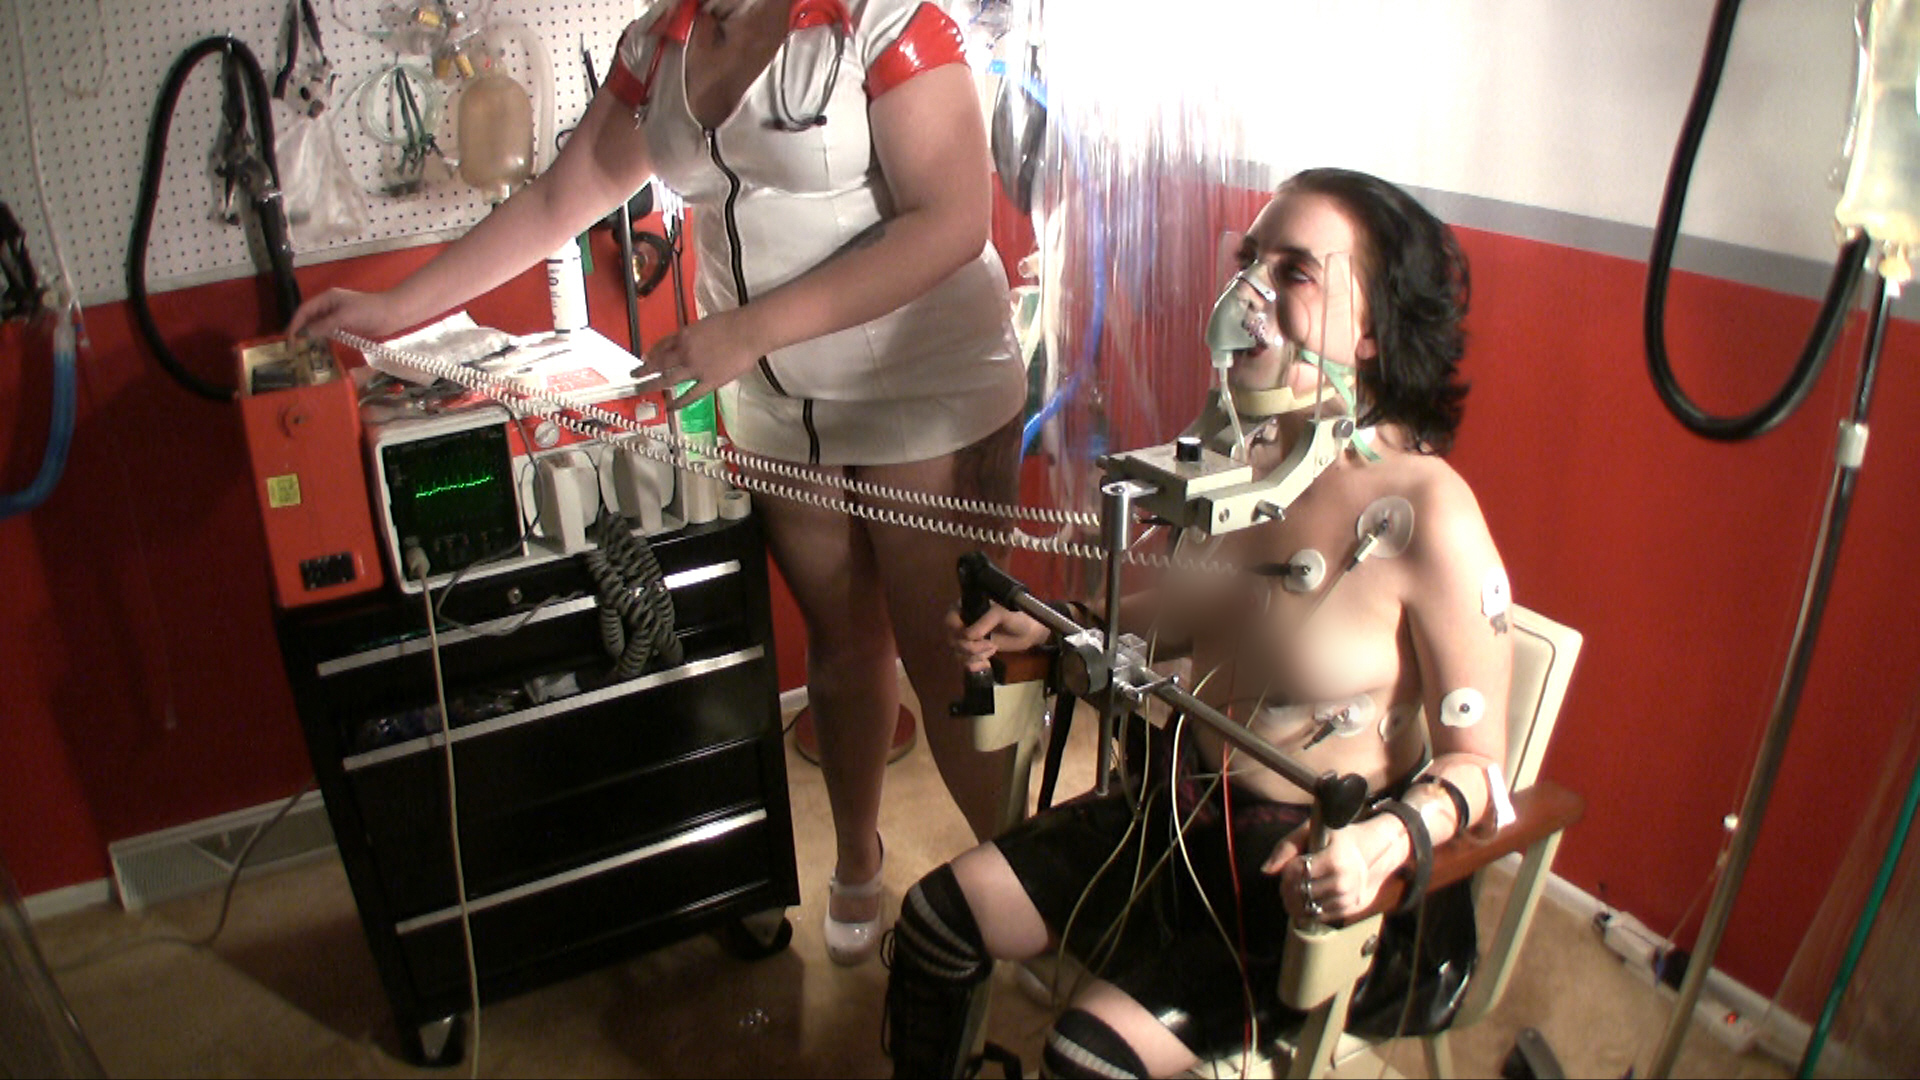 Well understand Girl having sex with a electric chair with you